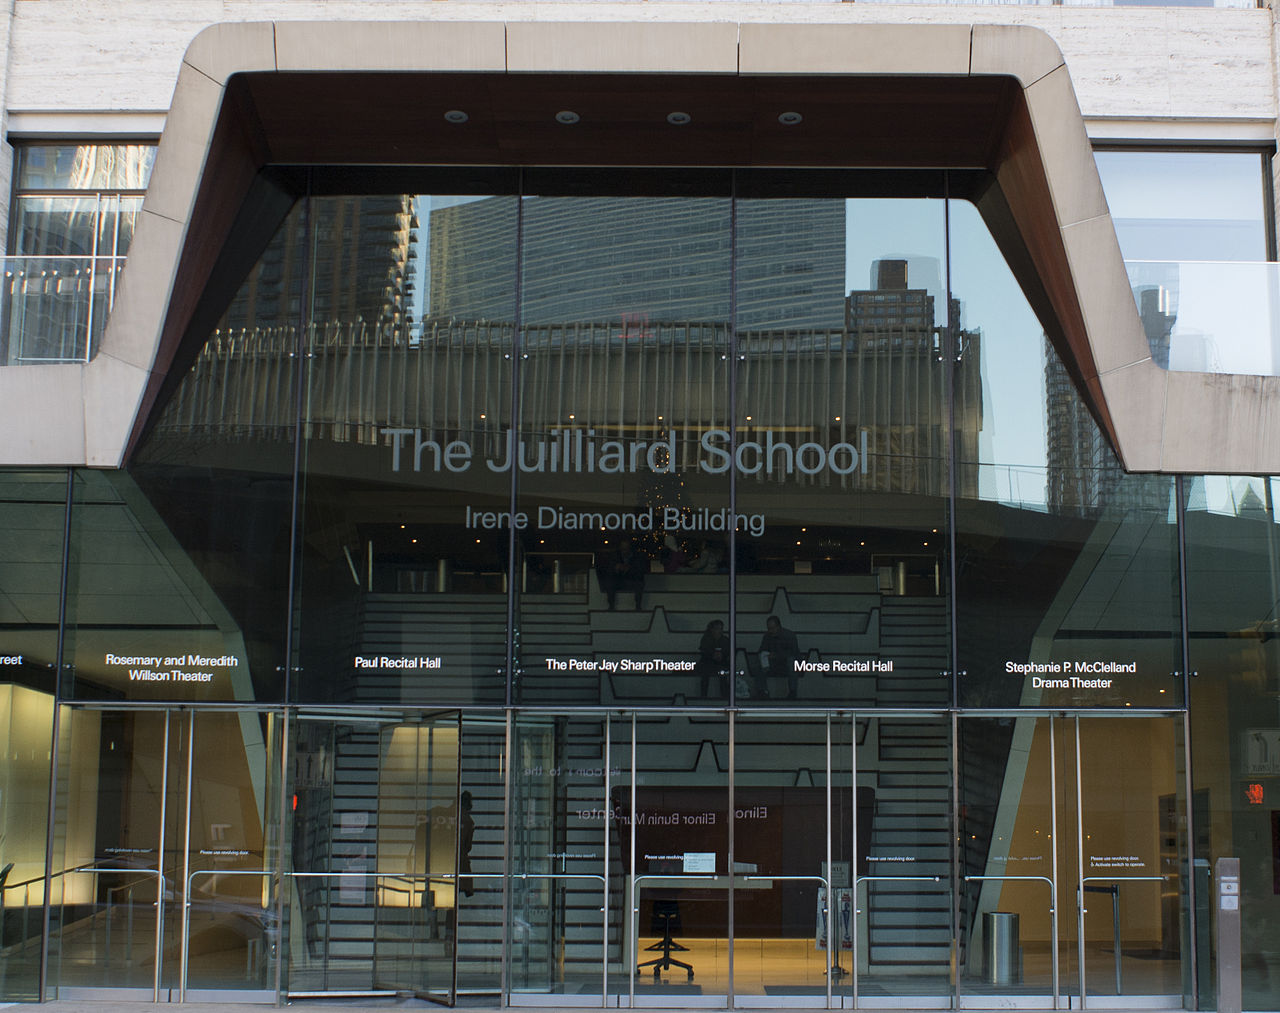 Juilliard School Image